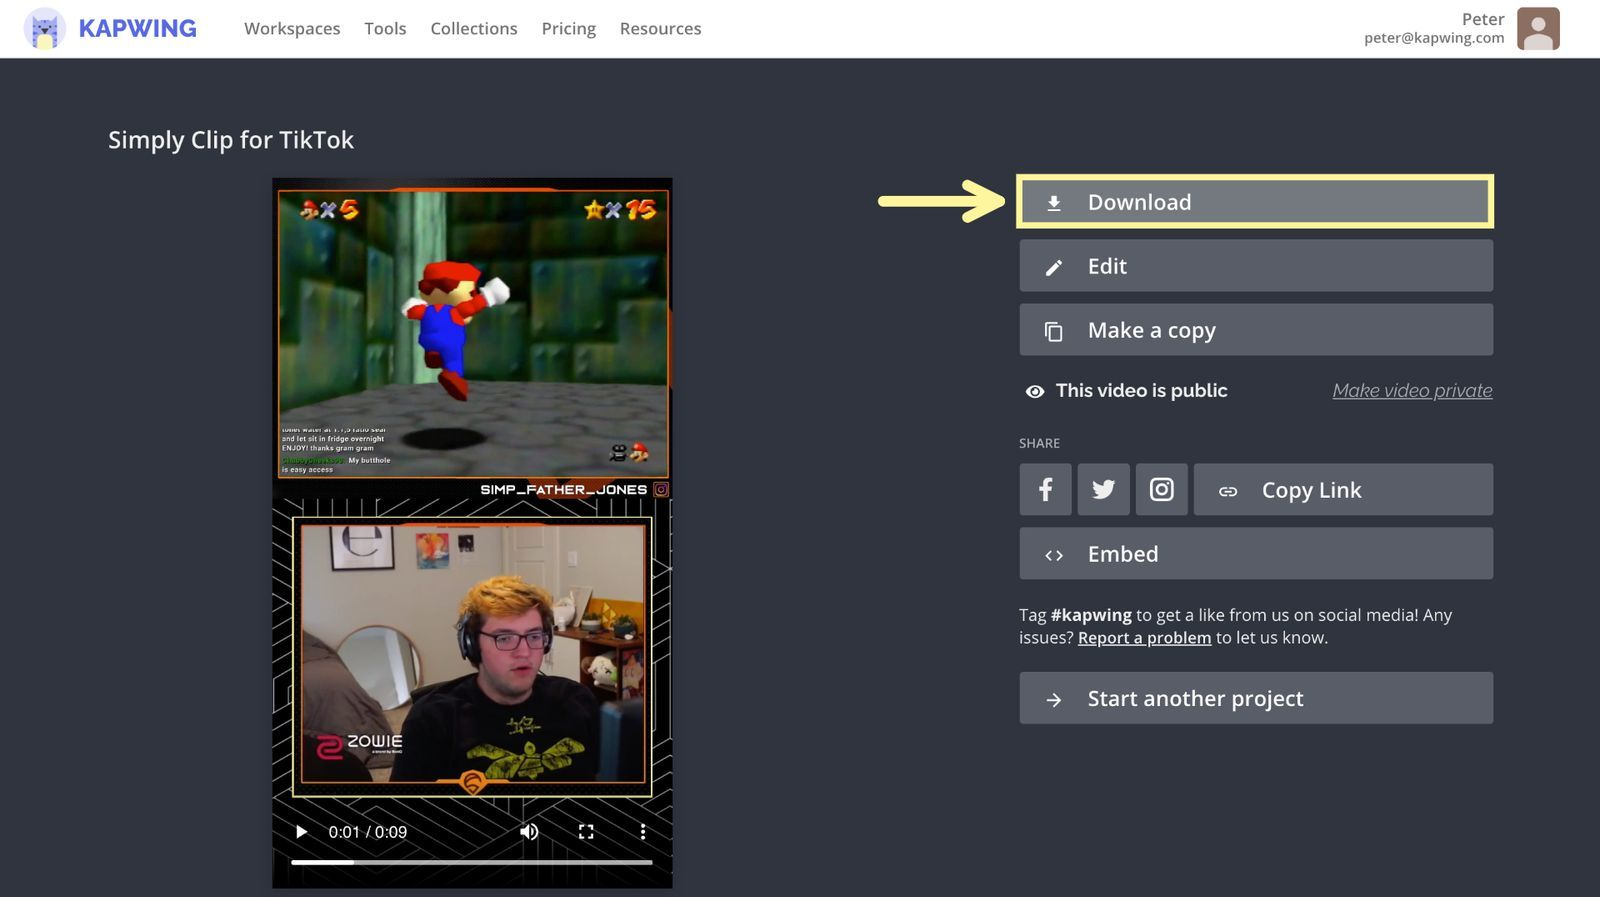 A screenshot of the Kapwing download page.